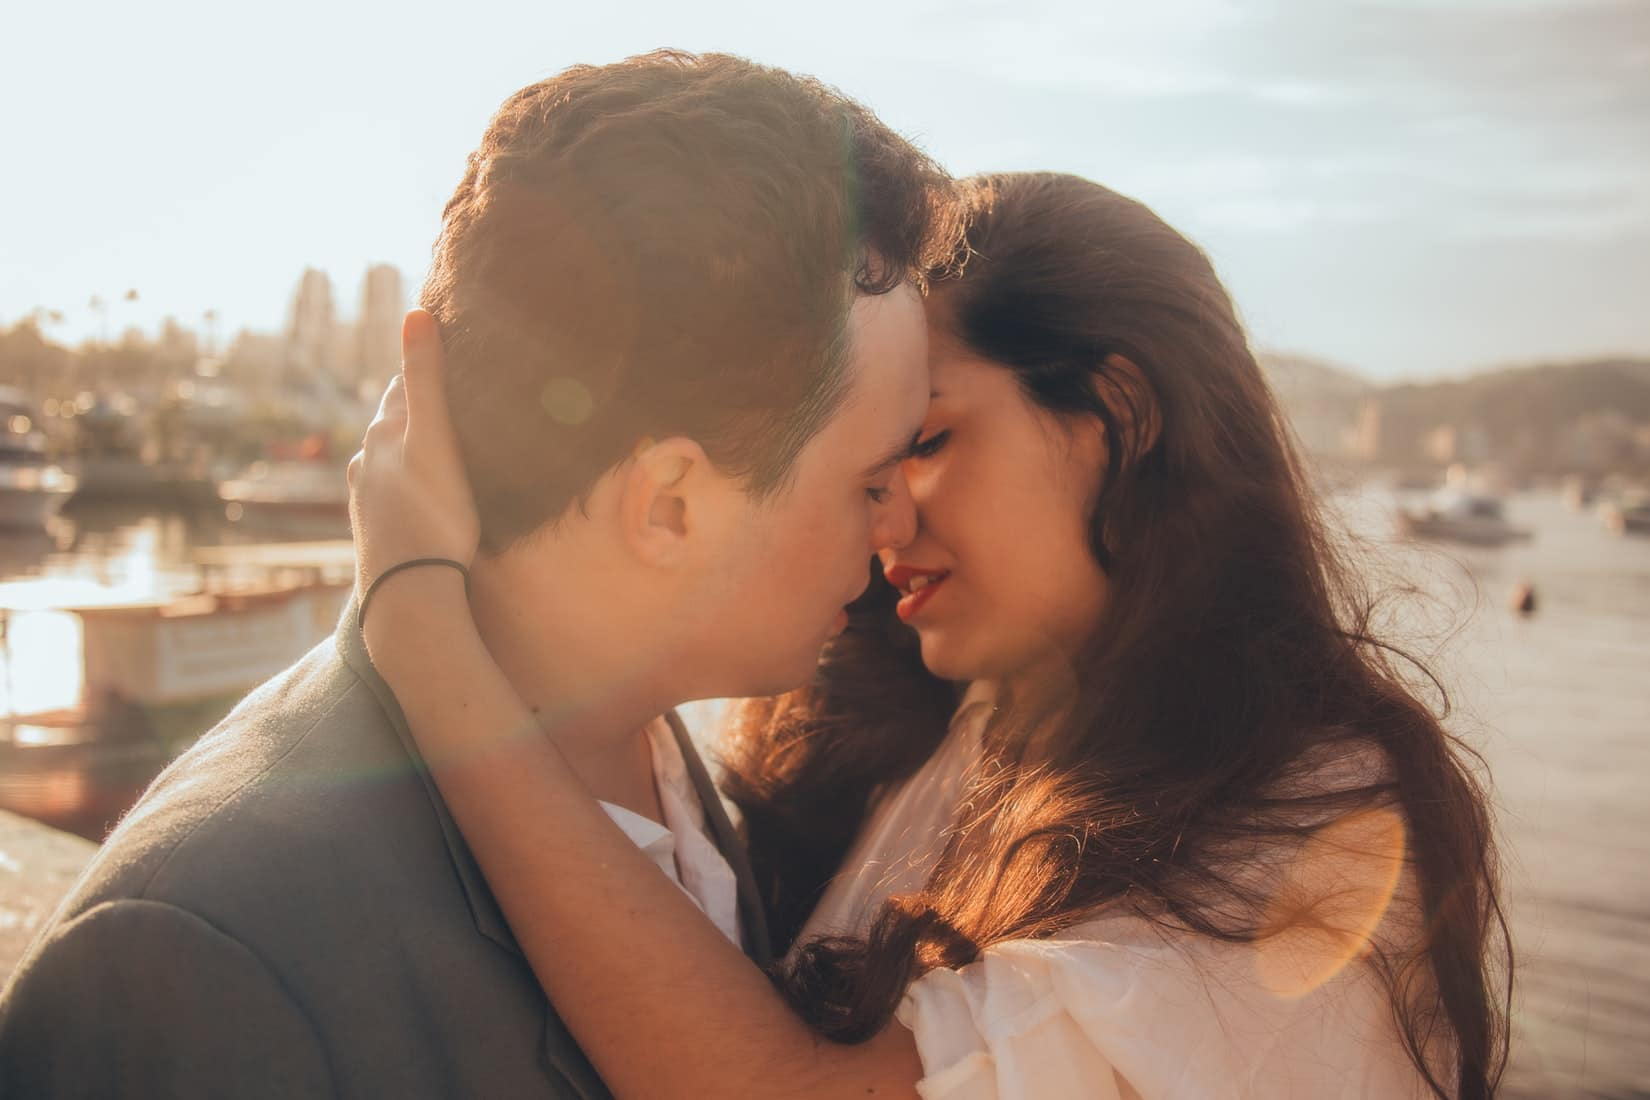 Guy kissing a girl as the sun sets.